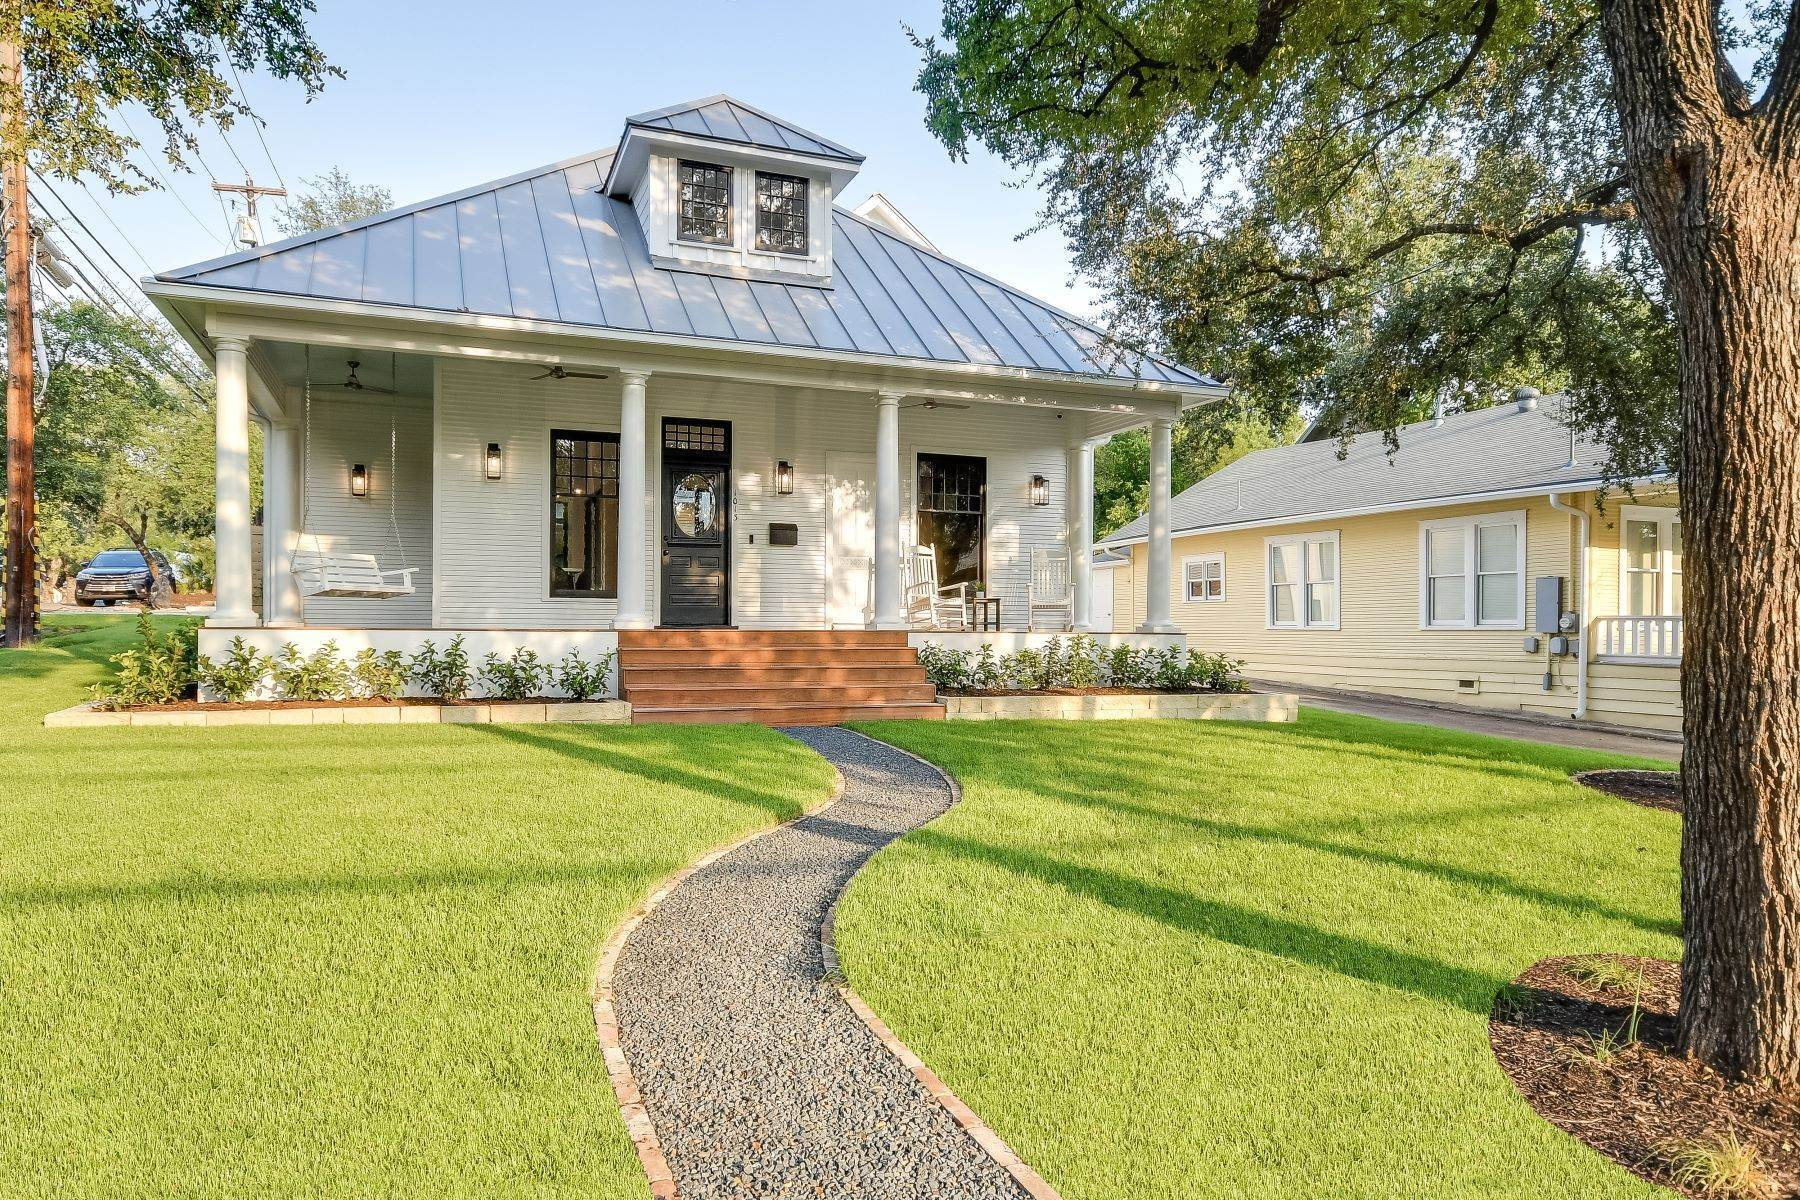 Single Family Homes for Sale at Remarkable Clarksville Remodel 1013 Blanco Street Austin, Texas 78703 United States